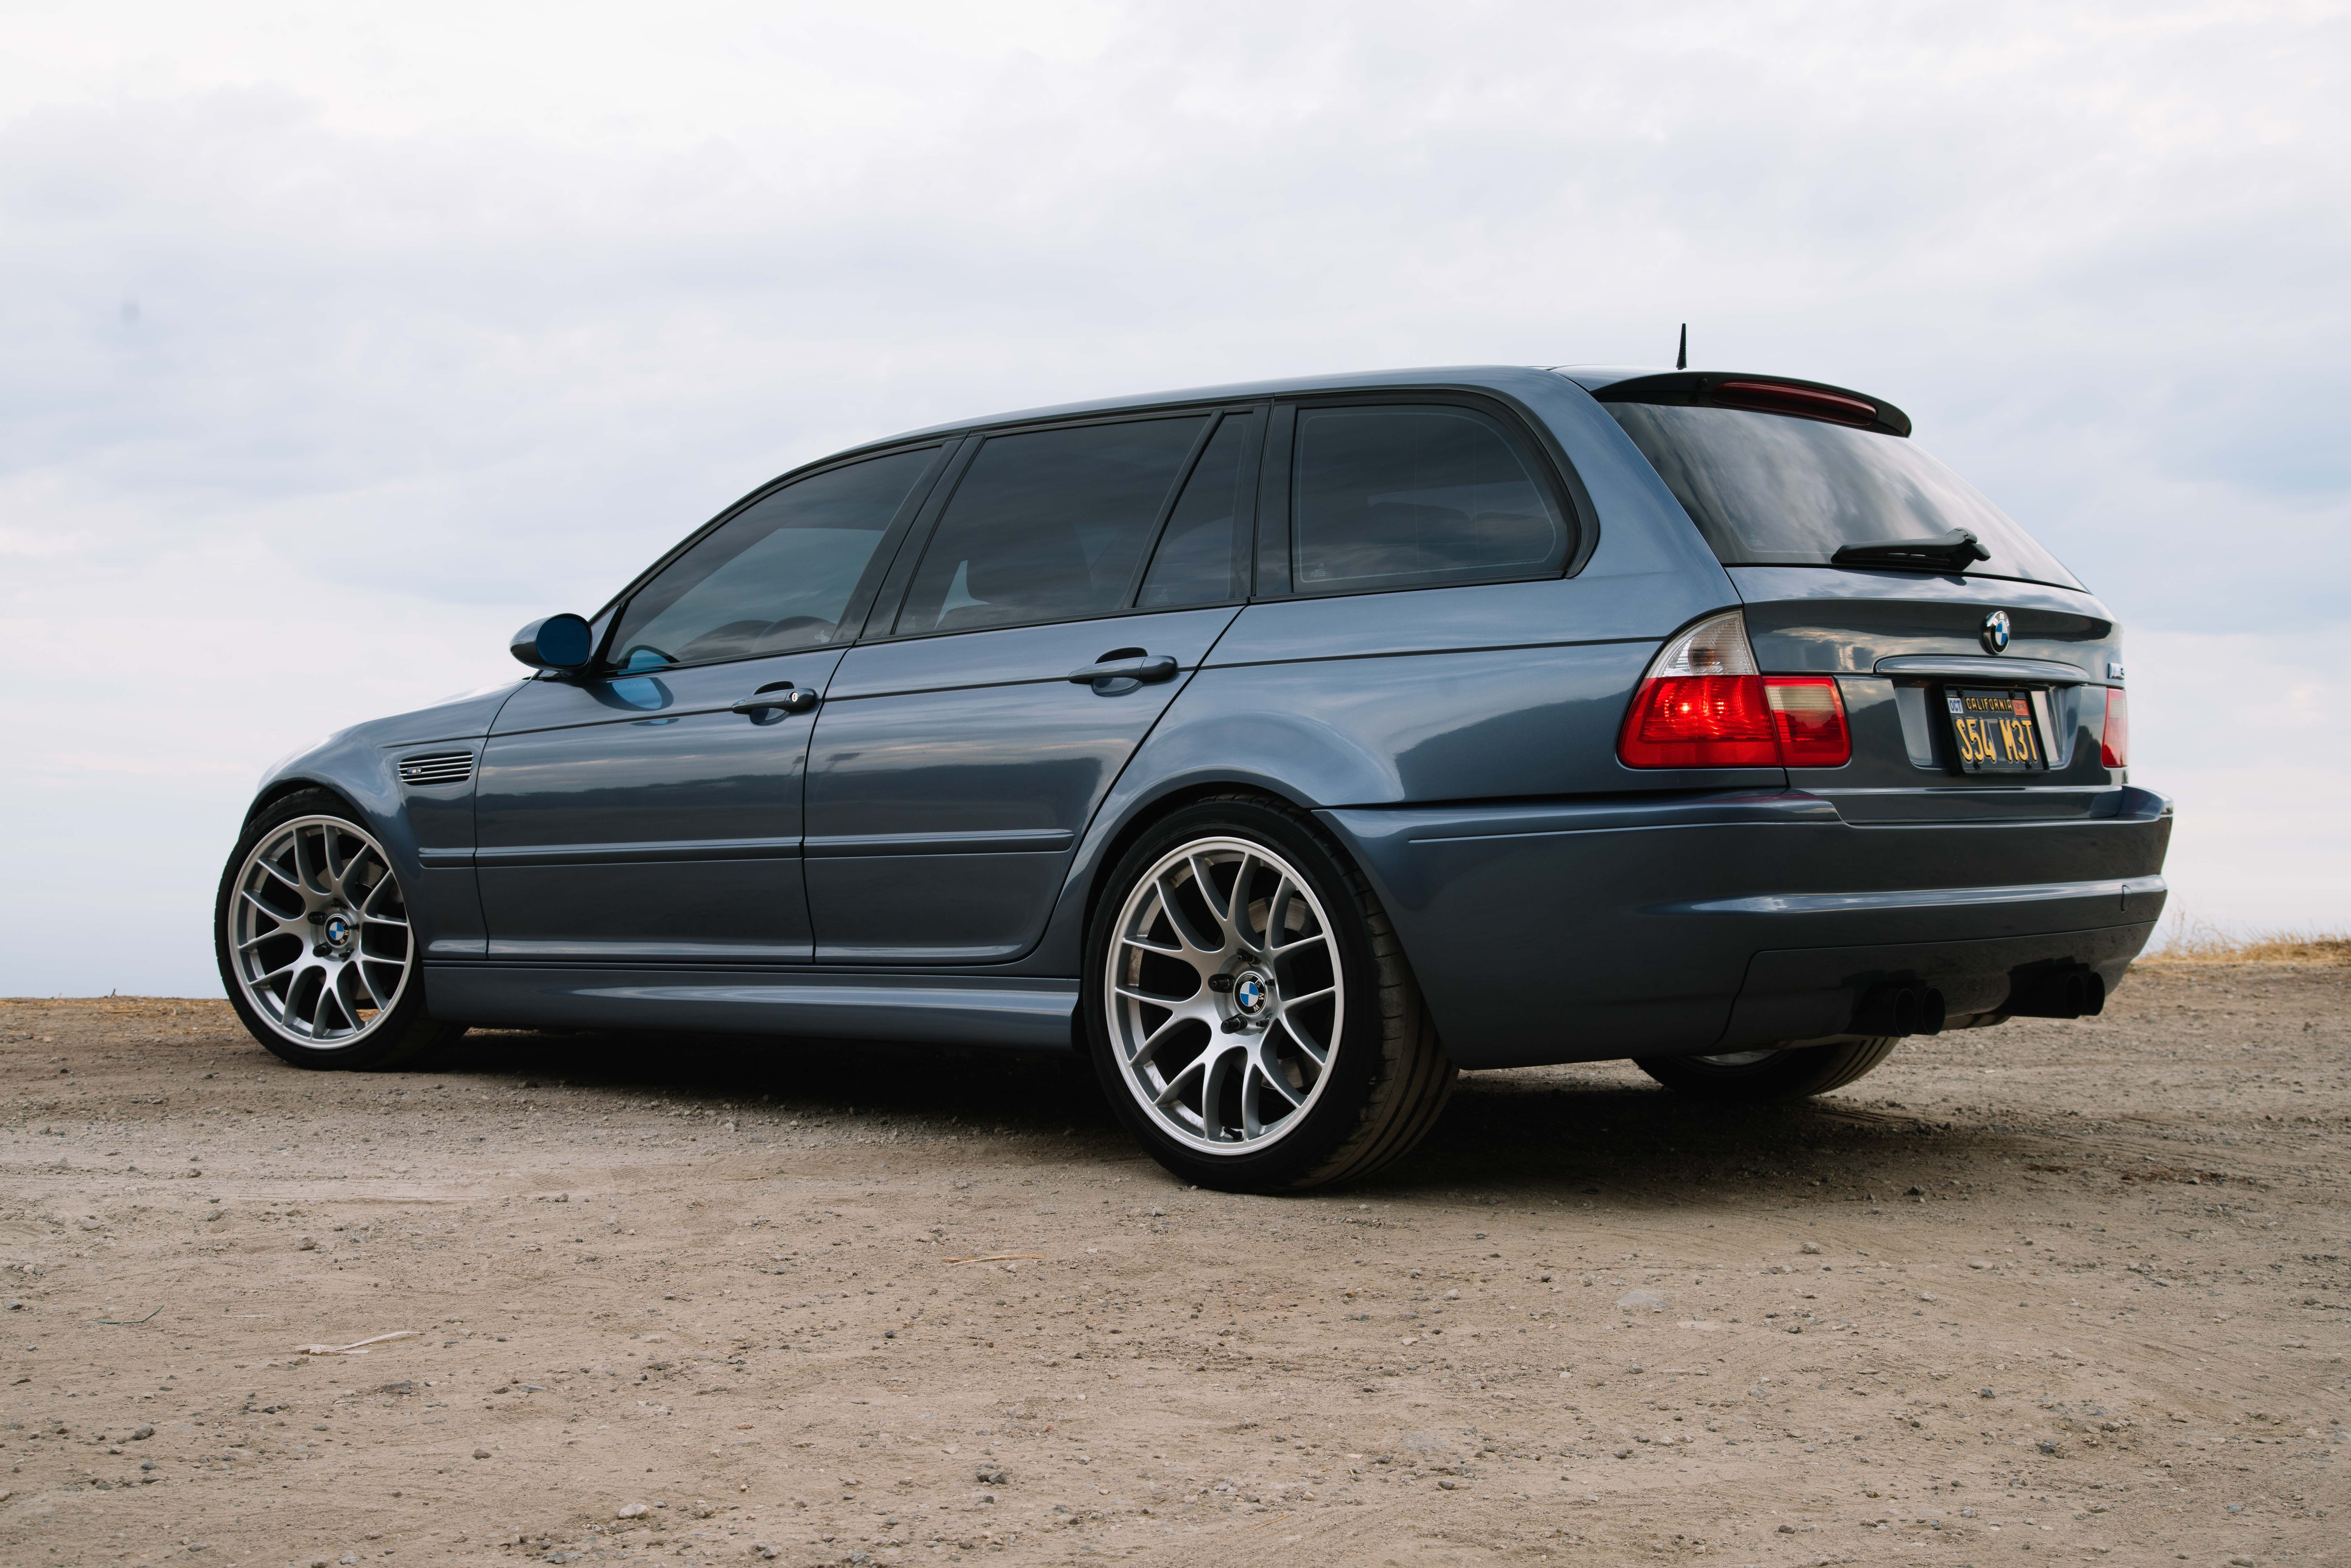 an e46 m3 wagon would have been the best bmw vroom bmw bmw touring bmw wagon. Black Bedroom Furniture Sets. Home Design Ideas